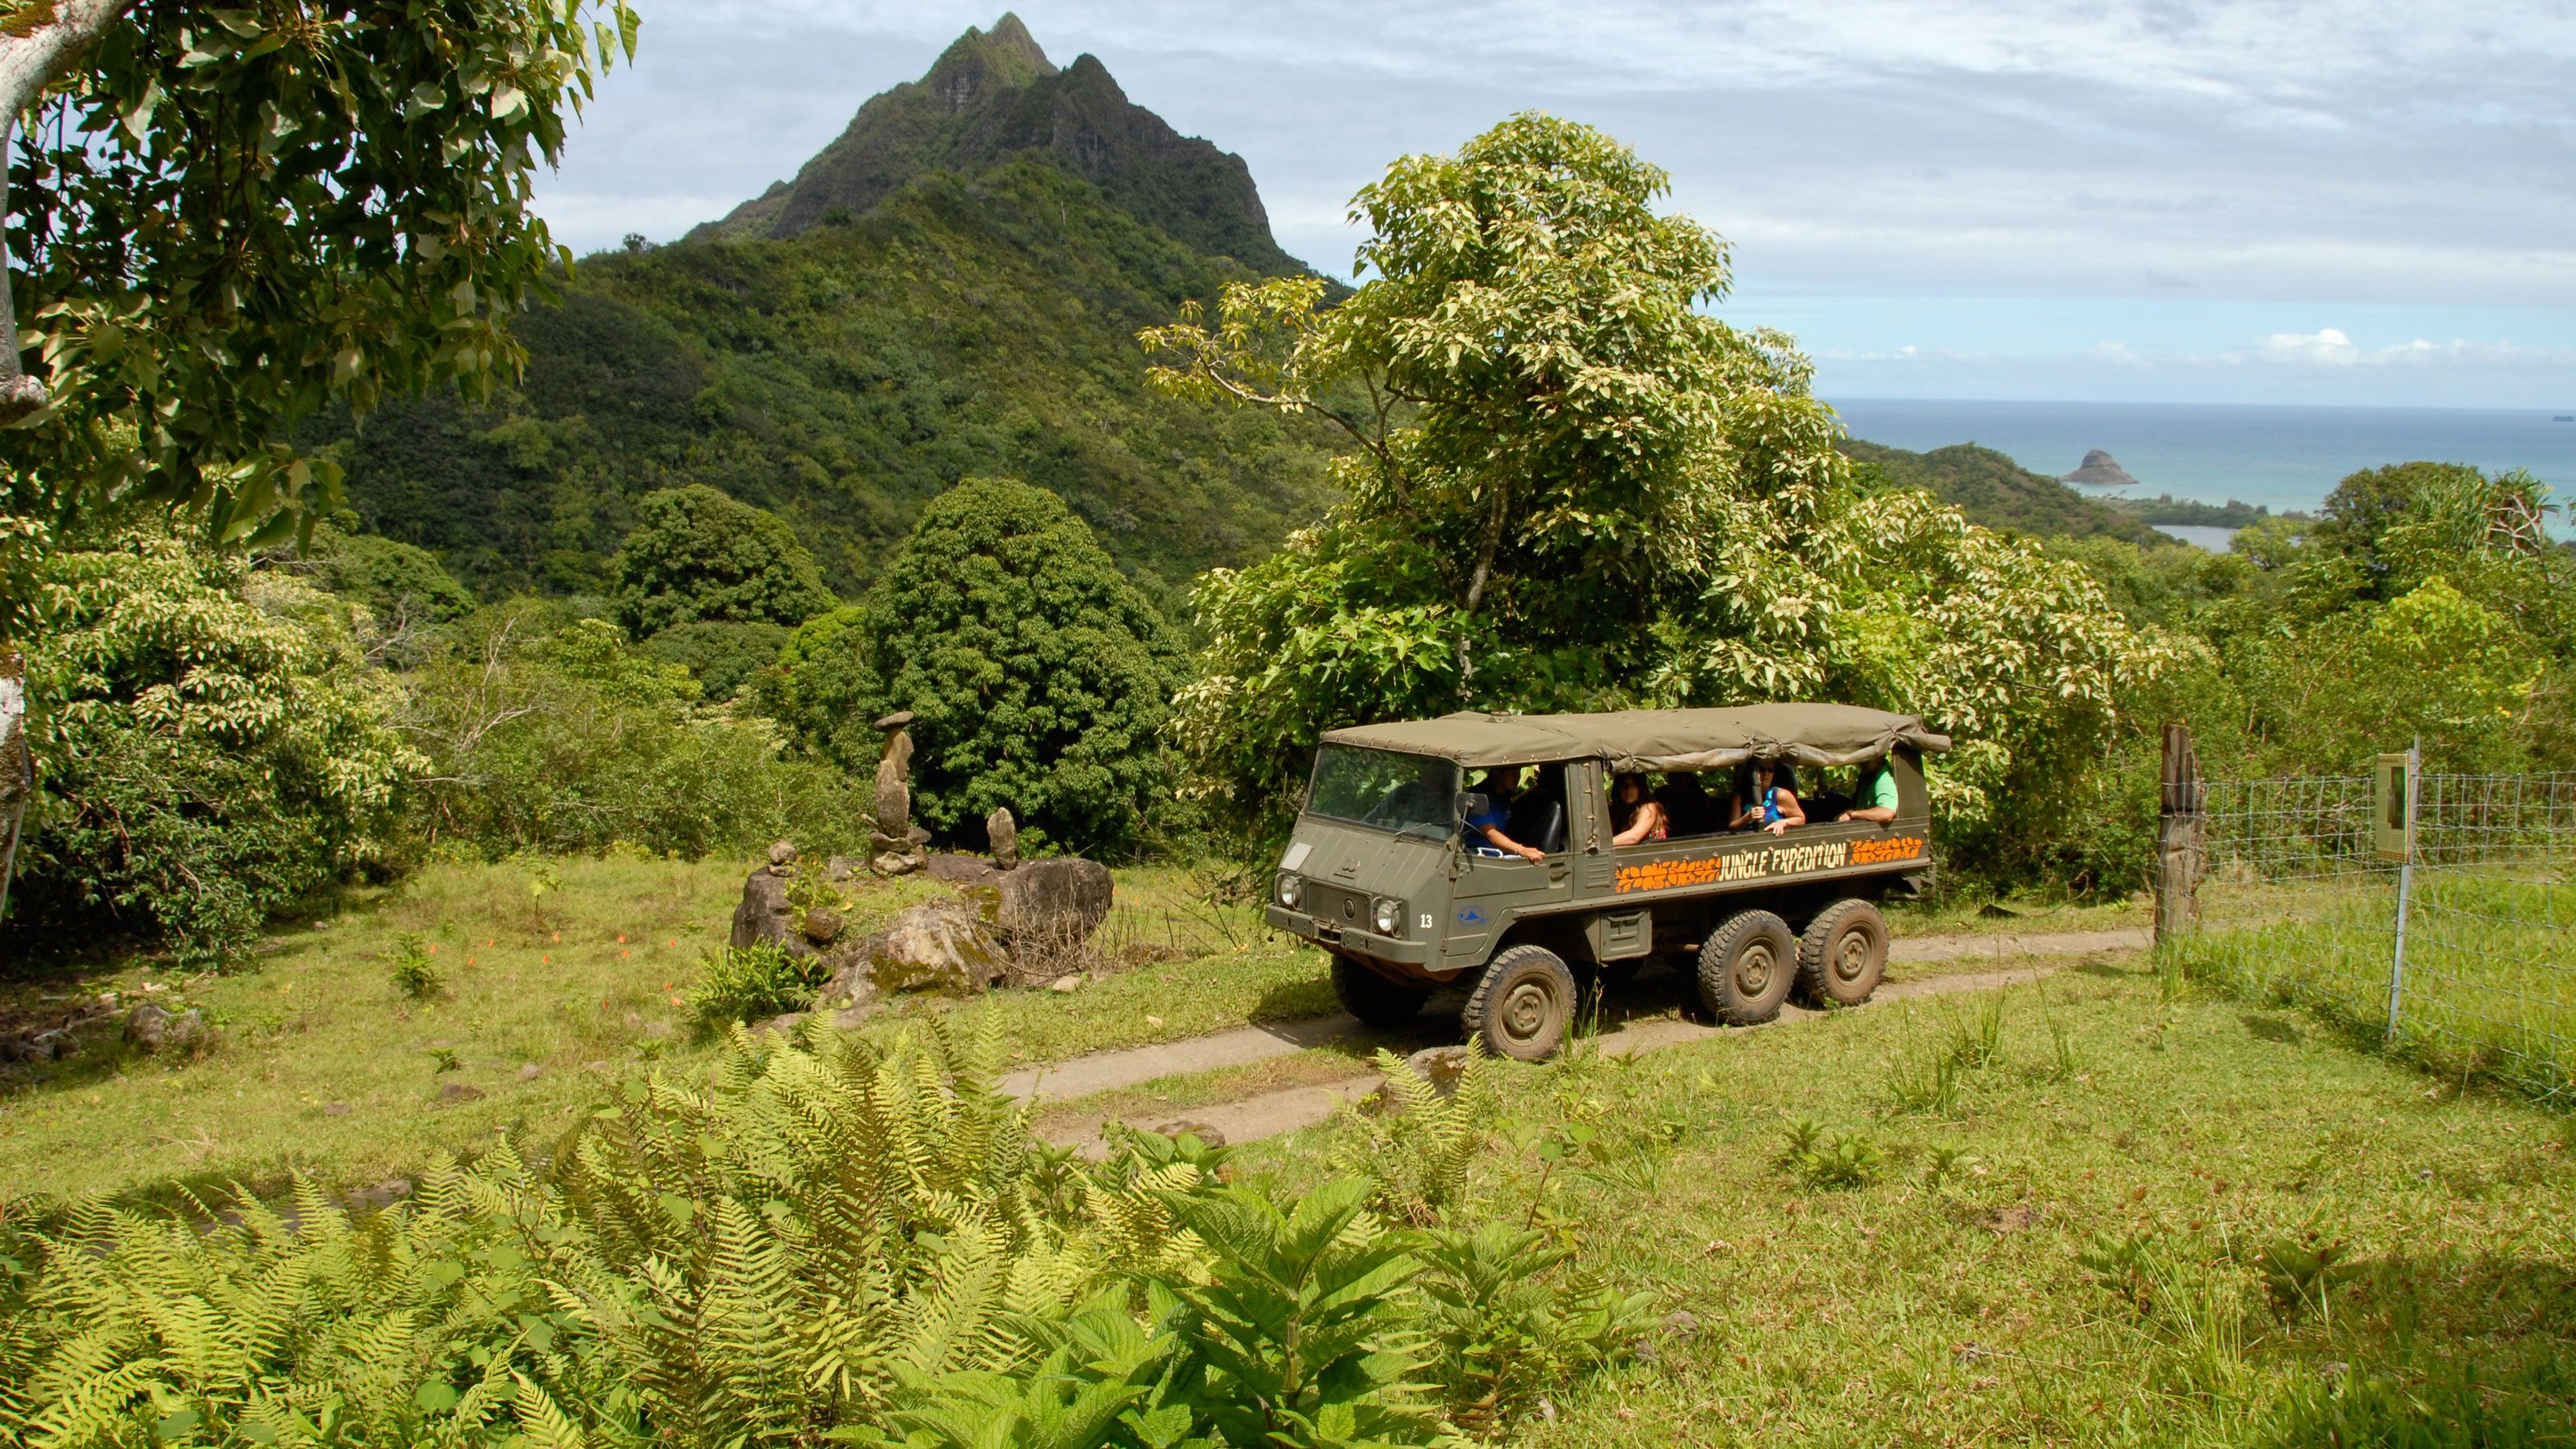 Touring vehicle with mountains in the background on Oahu